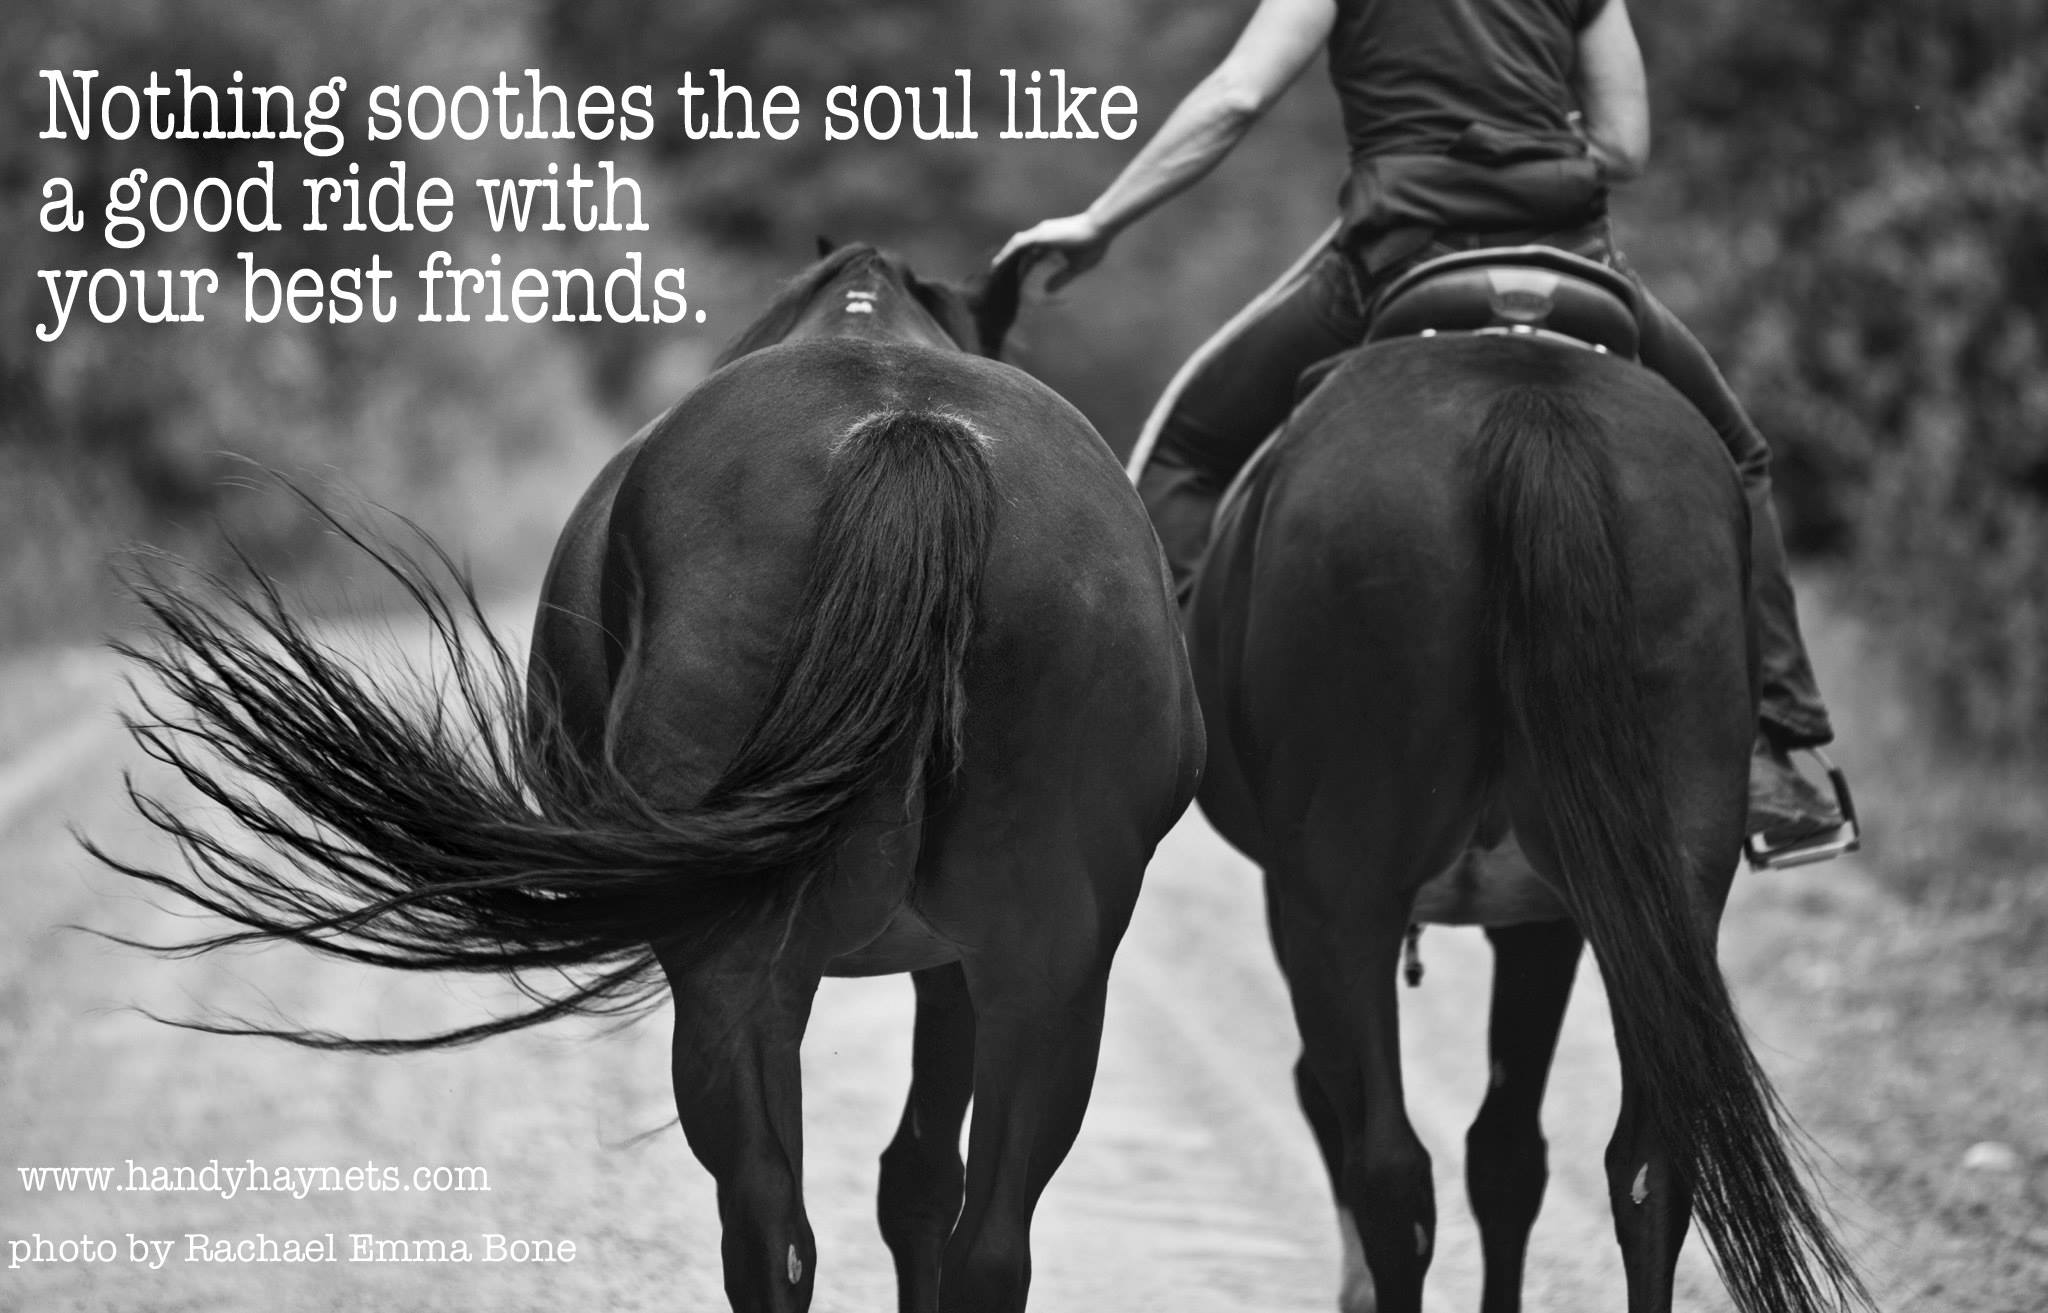 Nothing soothes your soul like a good ride.jpg